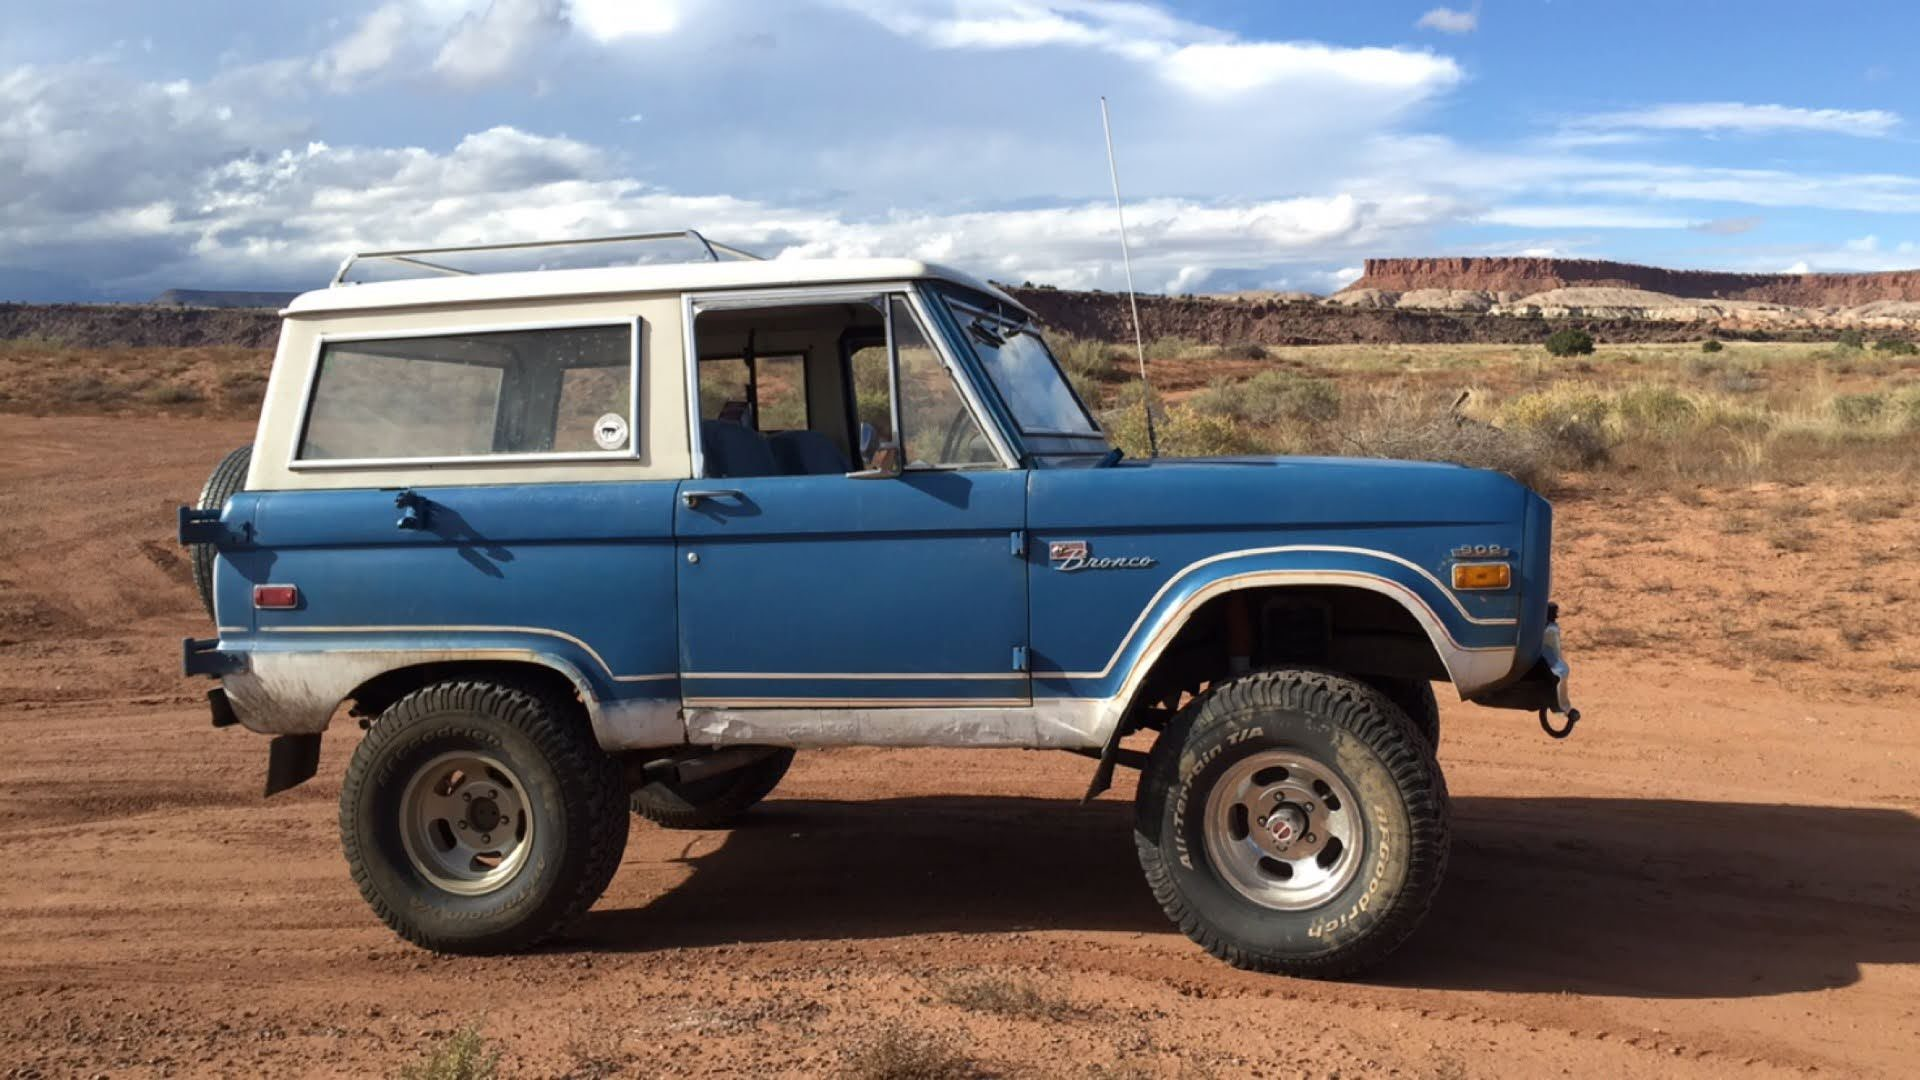 IF IT AIN'T BROKE, DON'T FIX IT – 1971 ORIGINAL BRONCO